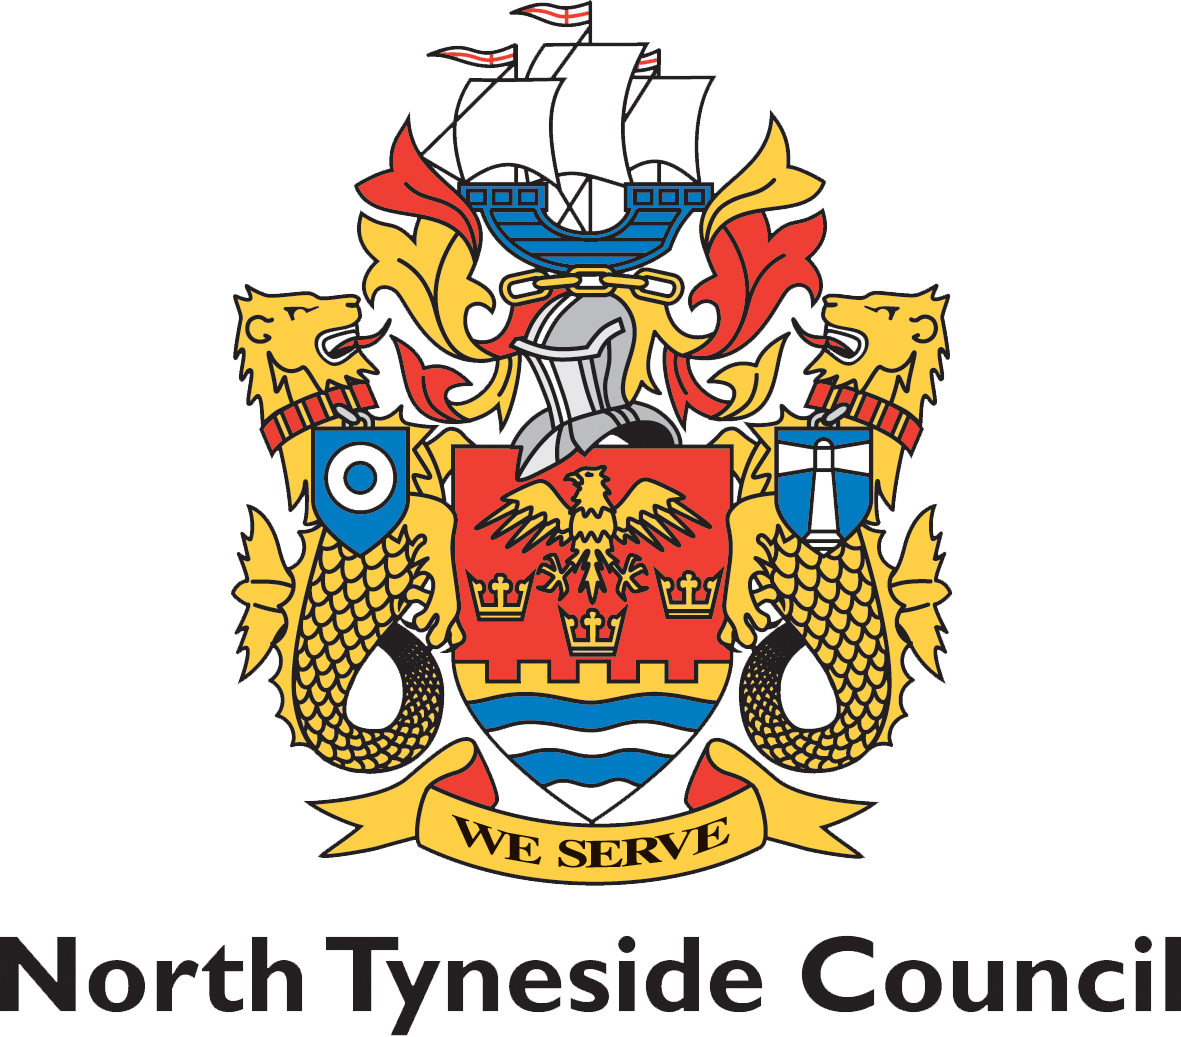 North Tyneside Council website